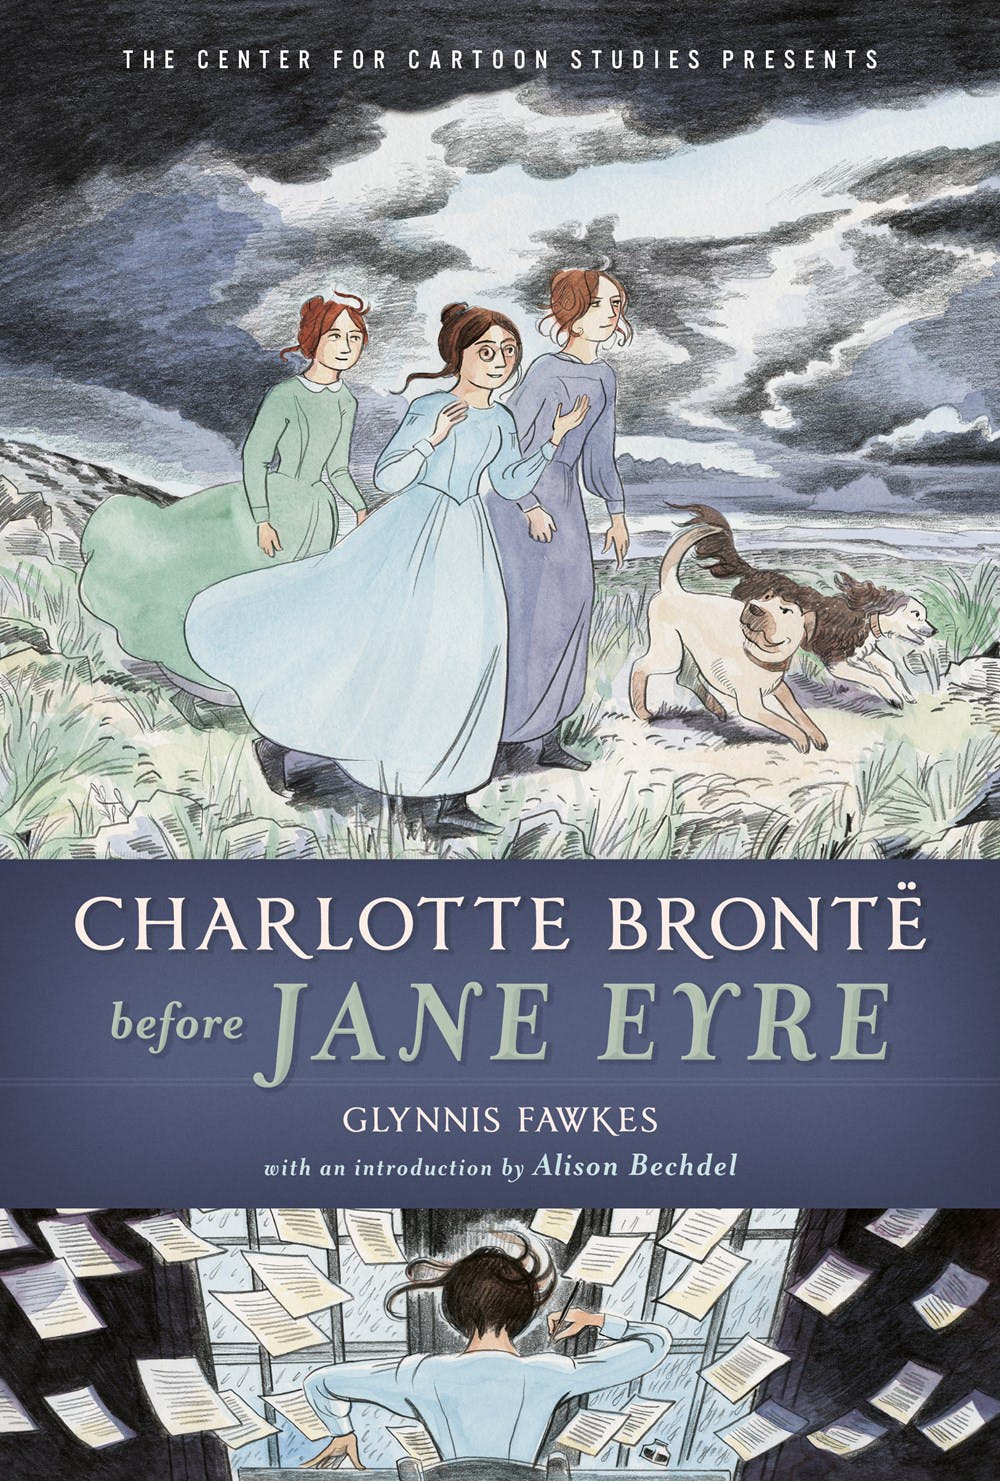 Charlotte Brontë before Jane Eyre (The Center for Cartoon Studies Presents)